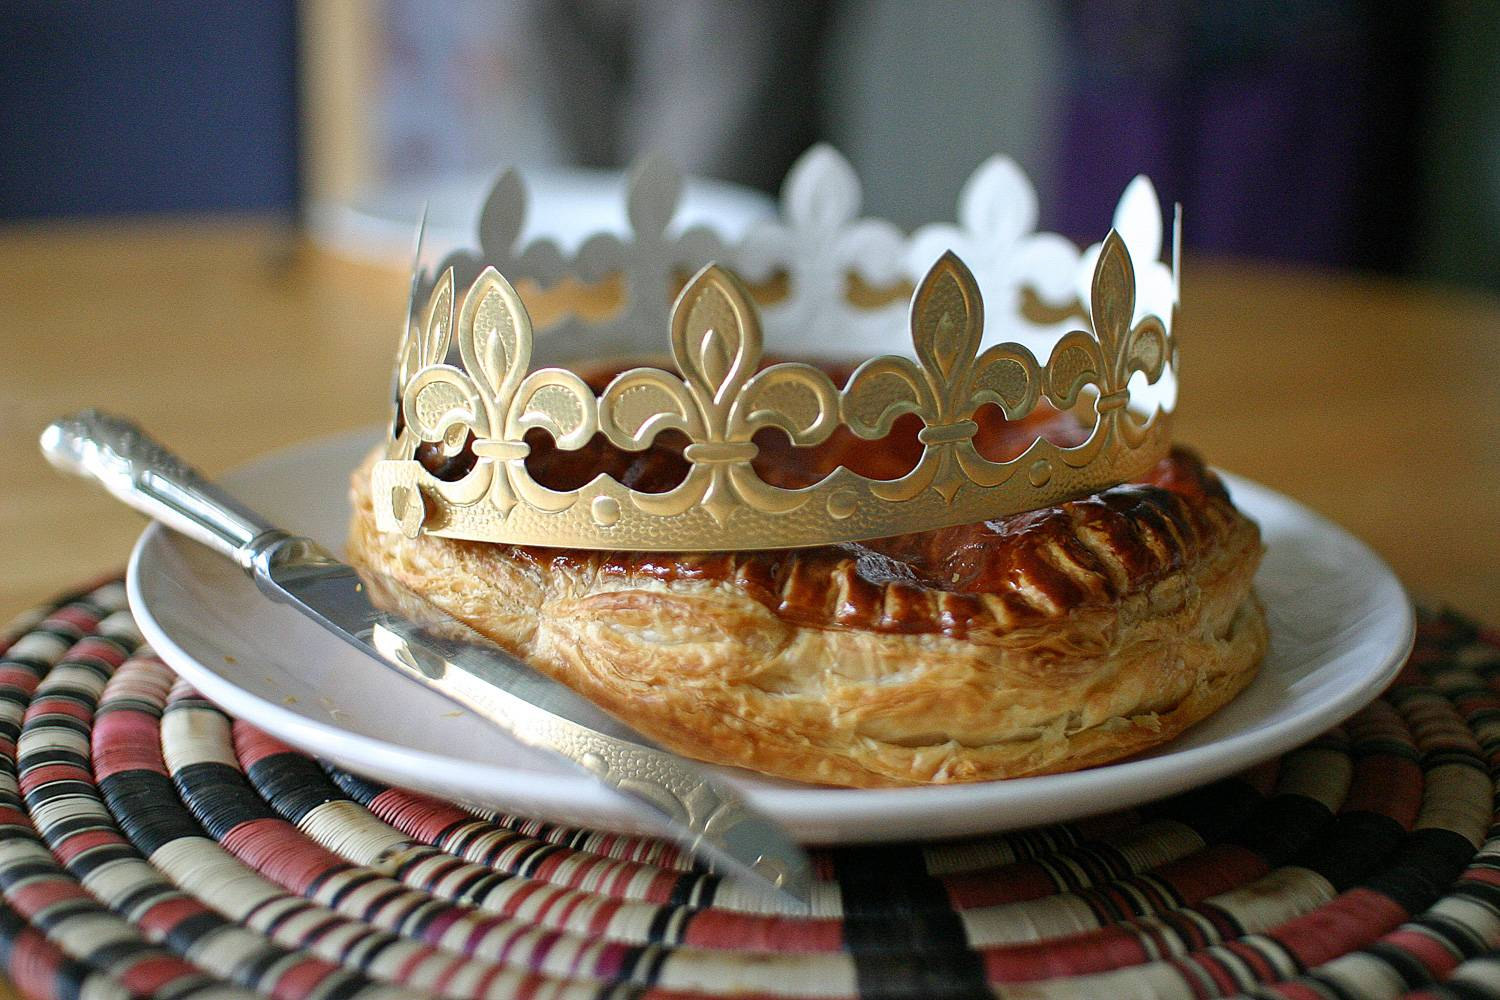 Image of galette des rois cake with paper crown.